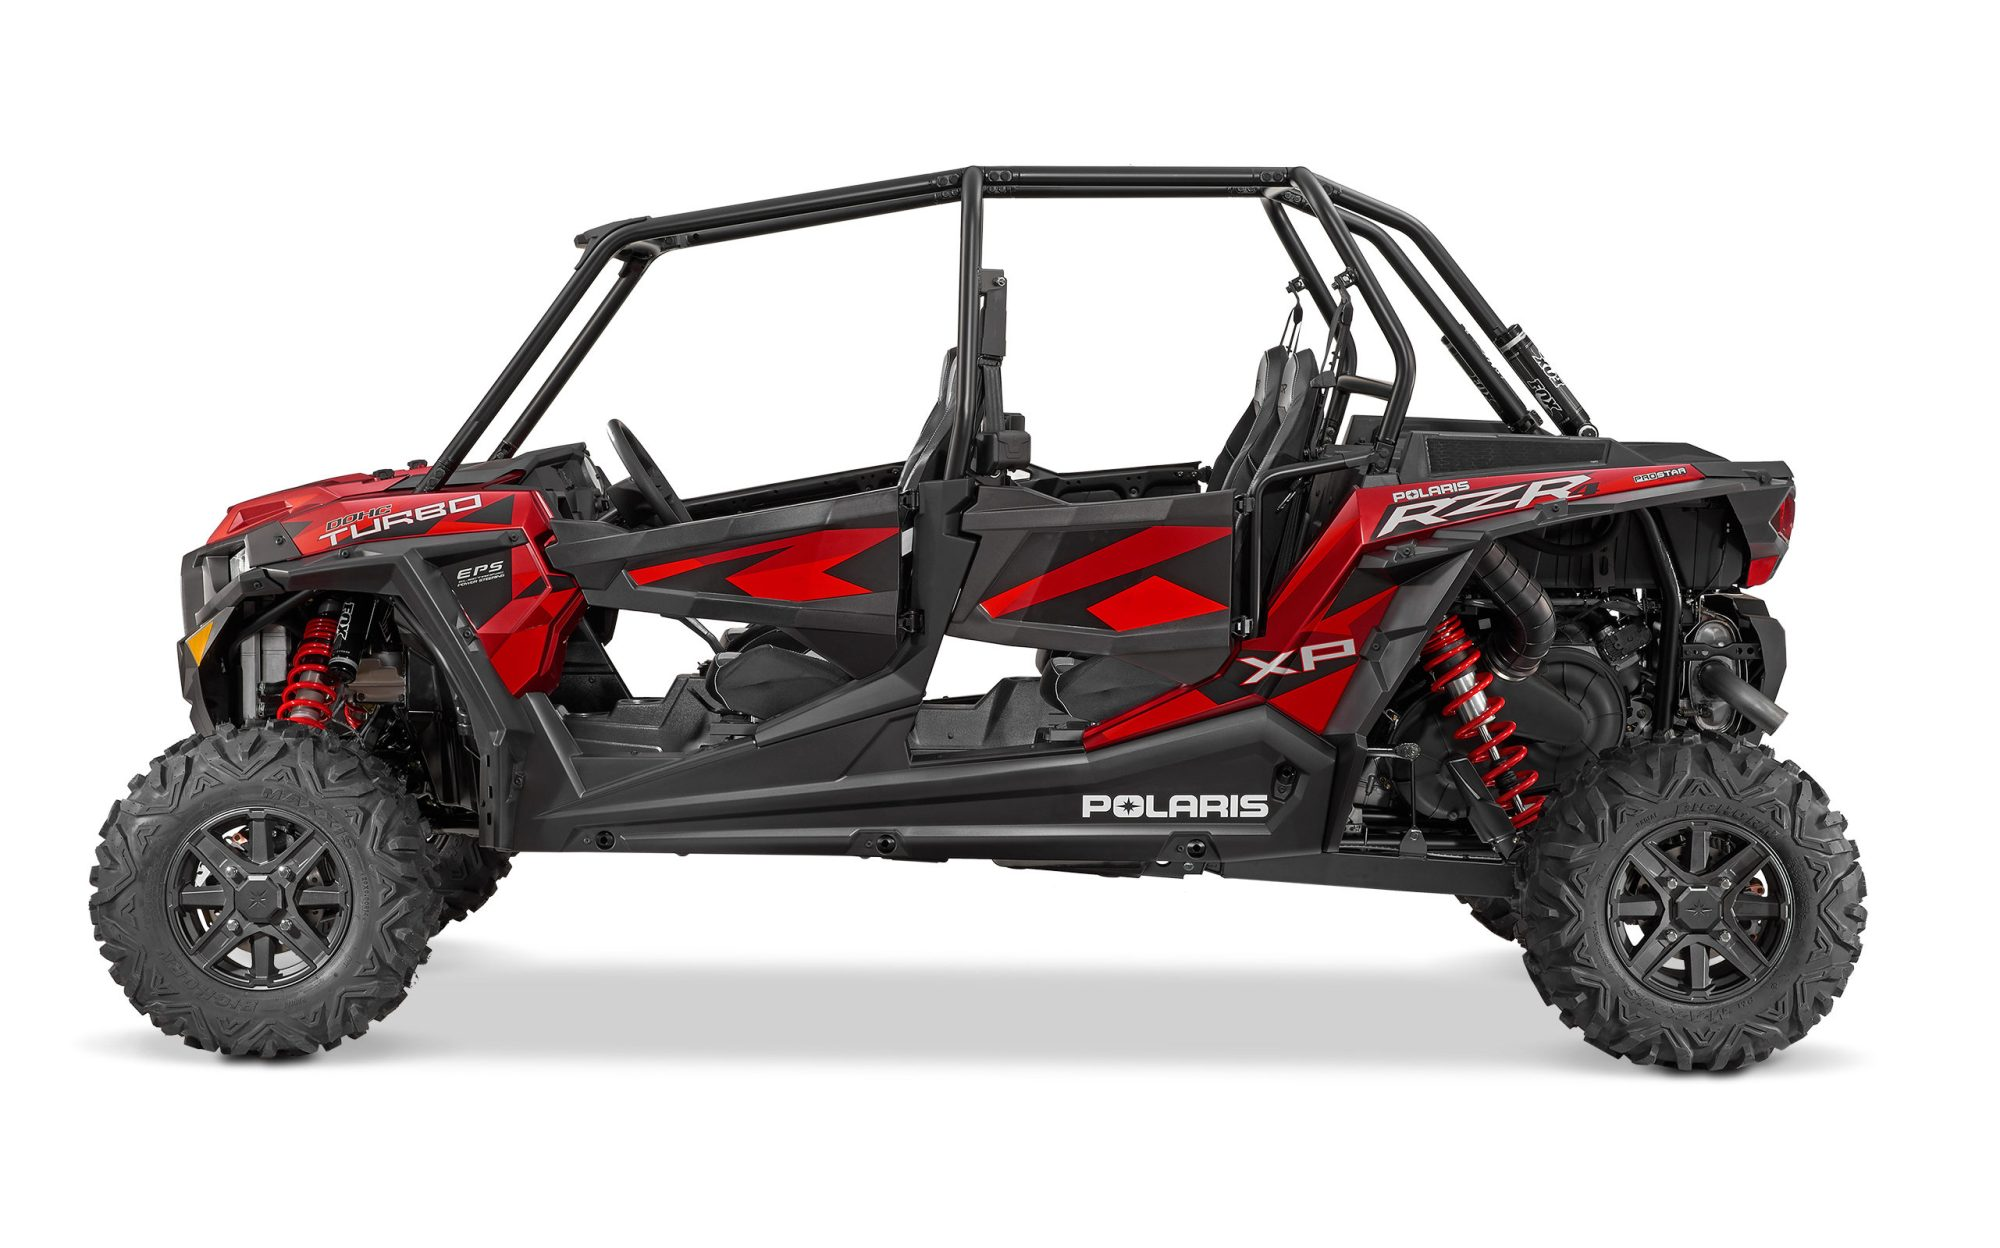 hight resolution of atv recalls 2016 rzr xp 4 turbo cpsc atv recalls polaris 570 2017 atv at cita asia 2017 polaris 570 sp headlight wiring